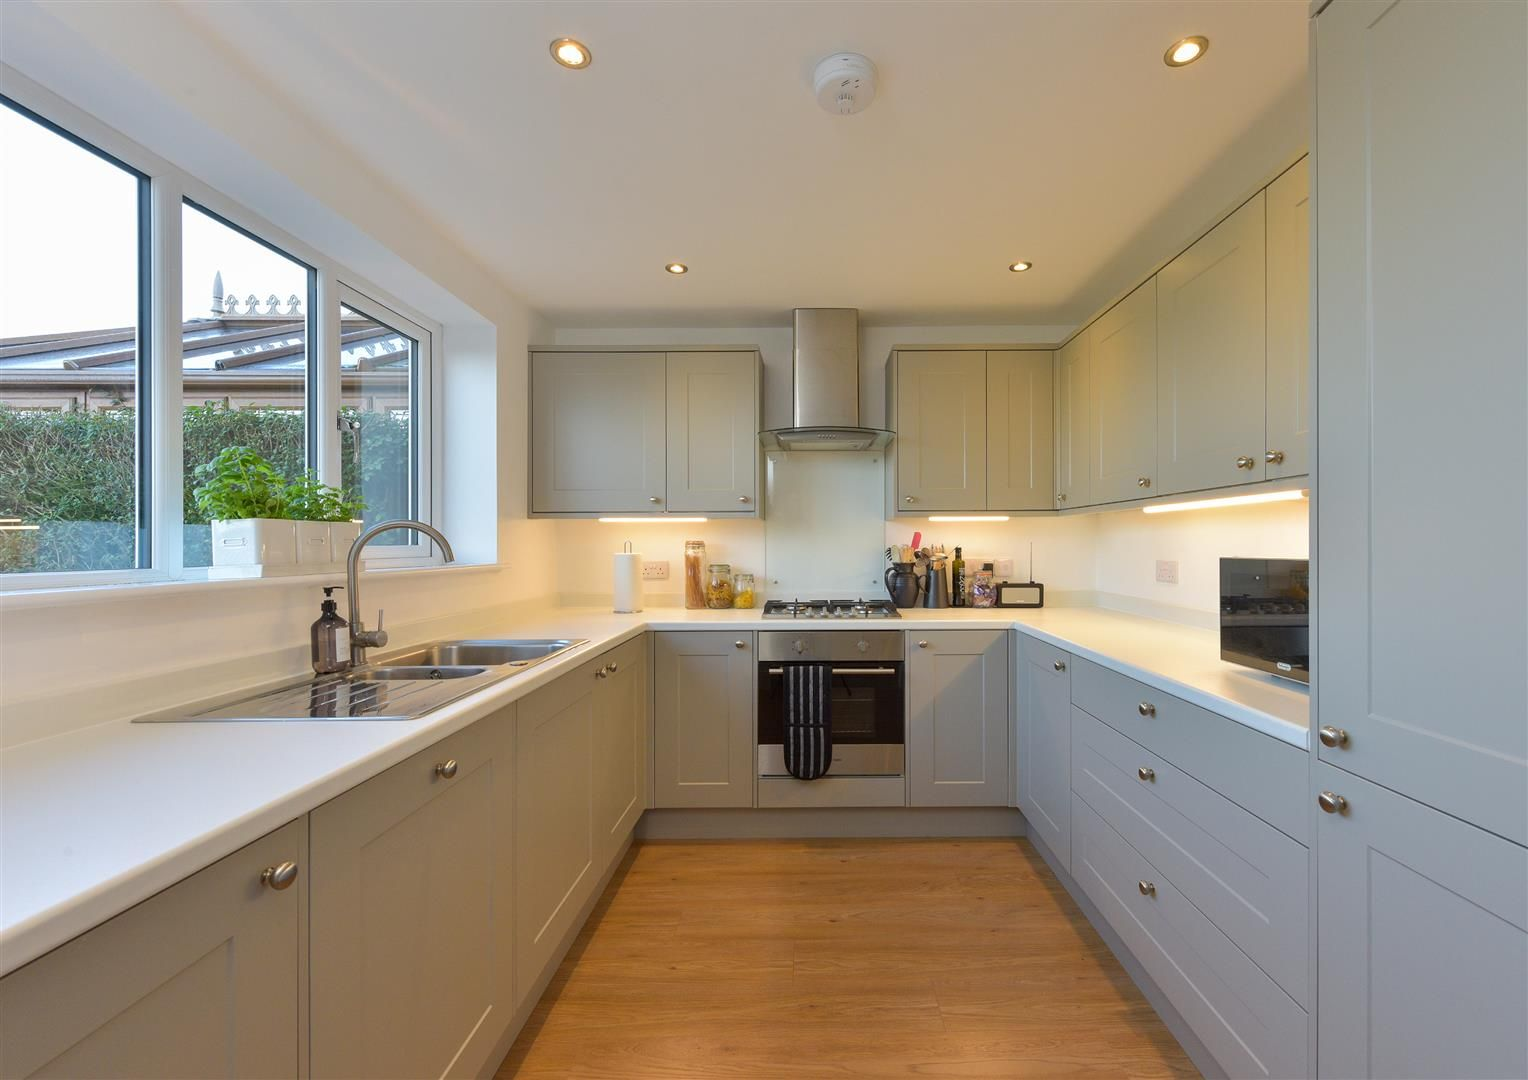 3 bed house for sale in Clent  - Property Image 4